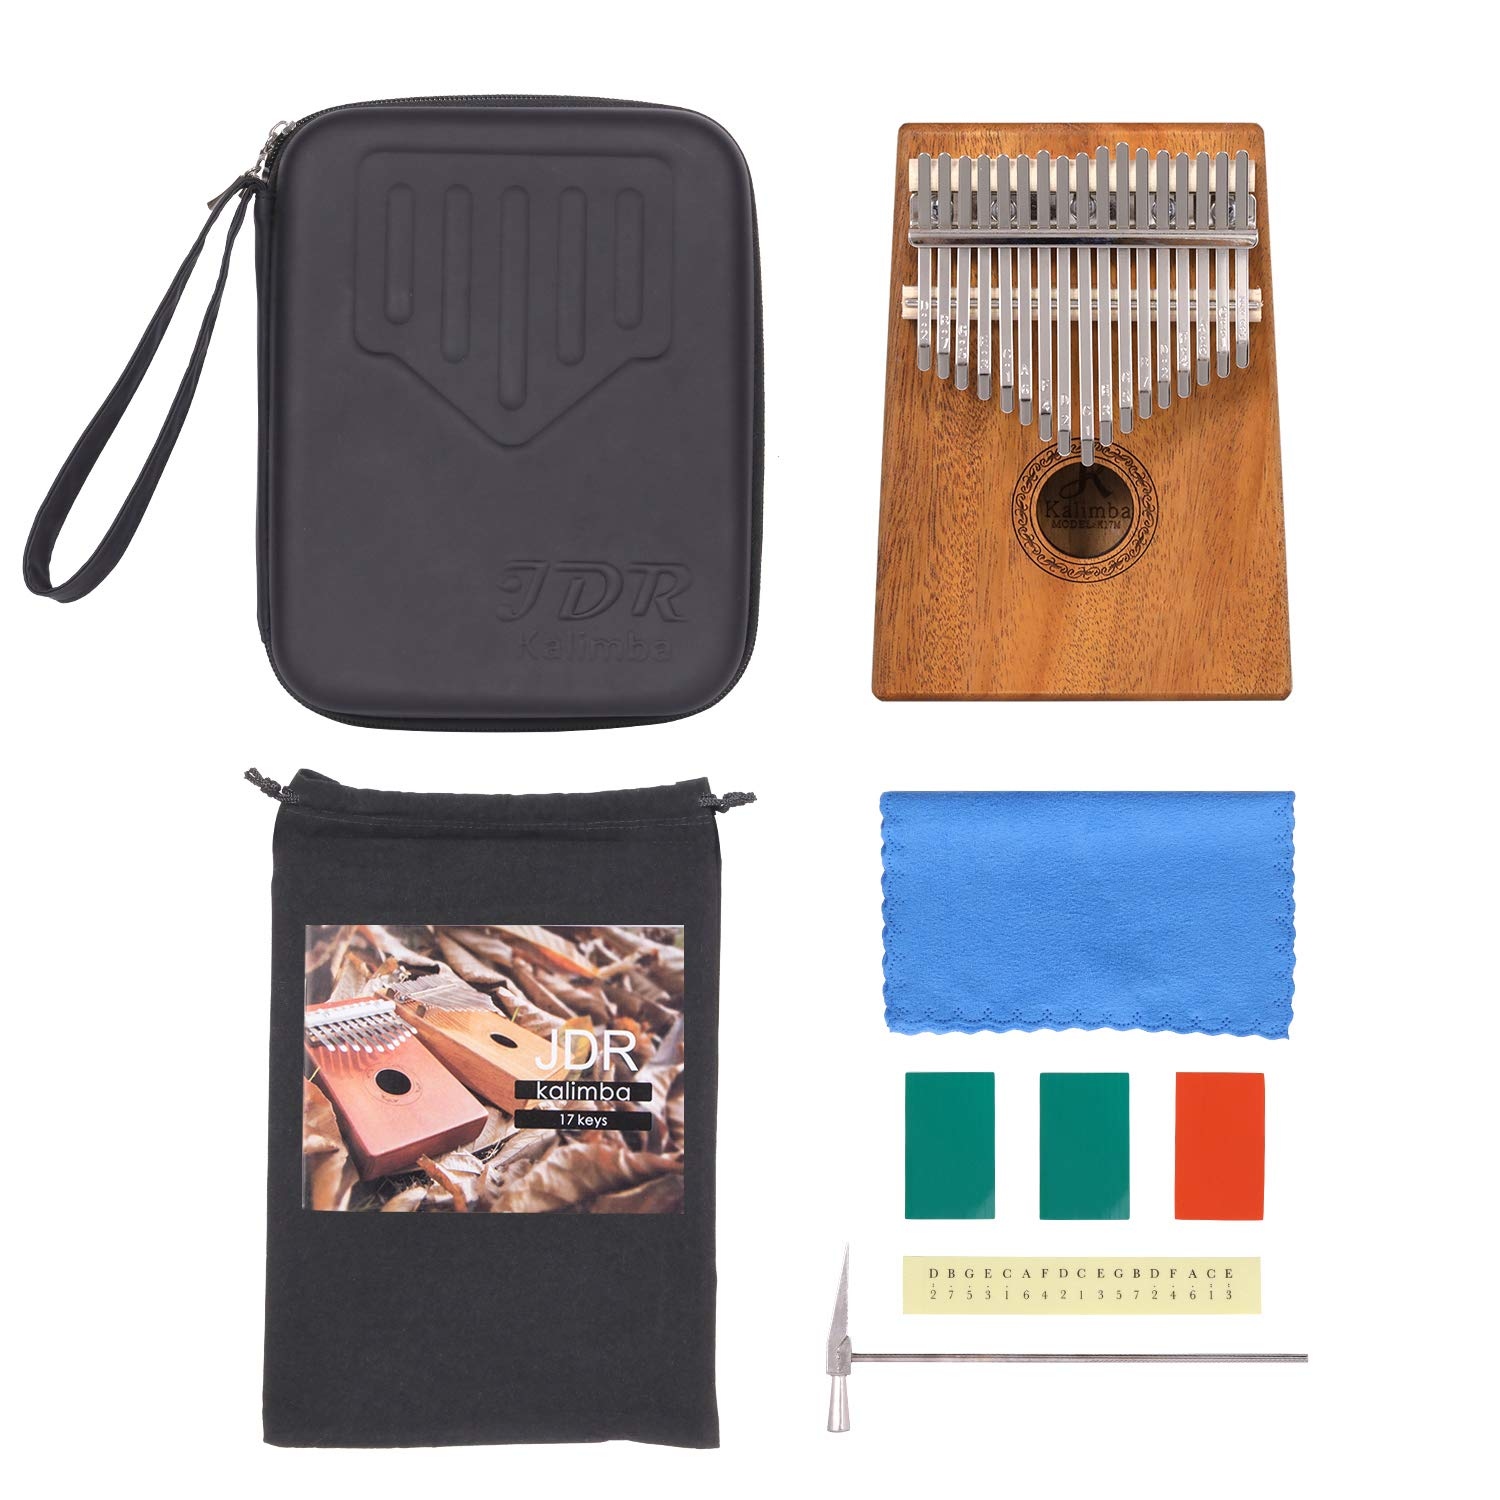 JDR 17 Keys kalimba, Thumb Piano with EVA Waterproof Hard Protective Case, Tuning Hammer and Music book, Unique and great birthday gift for musicians or kids without any musical basis by JDR